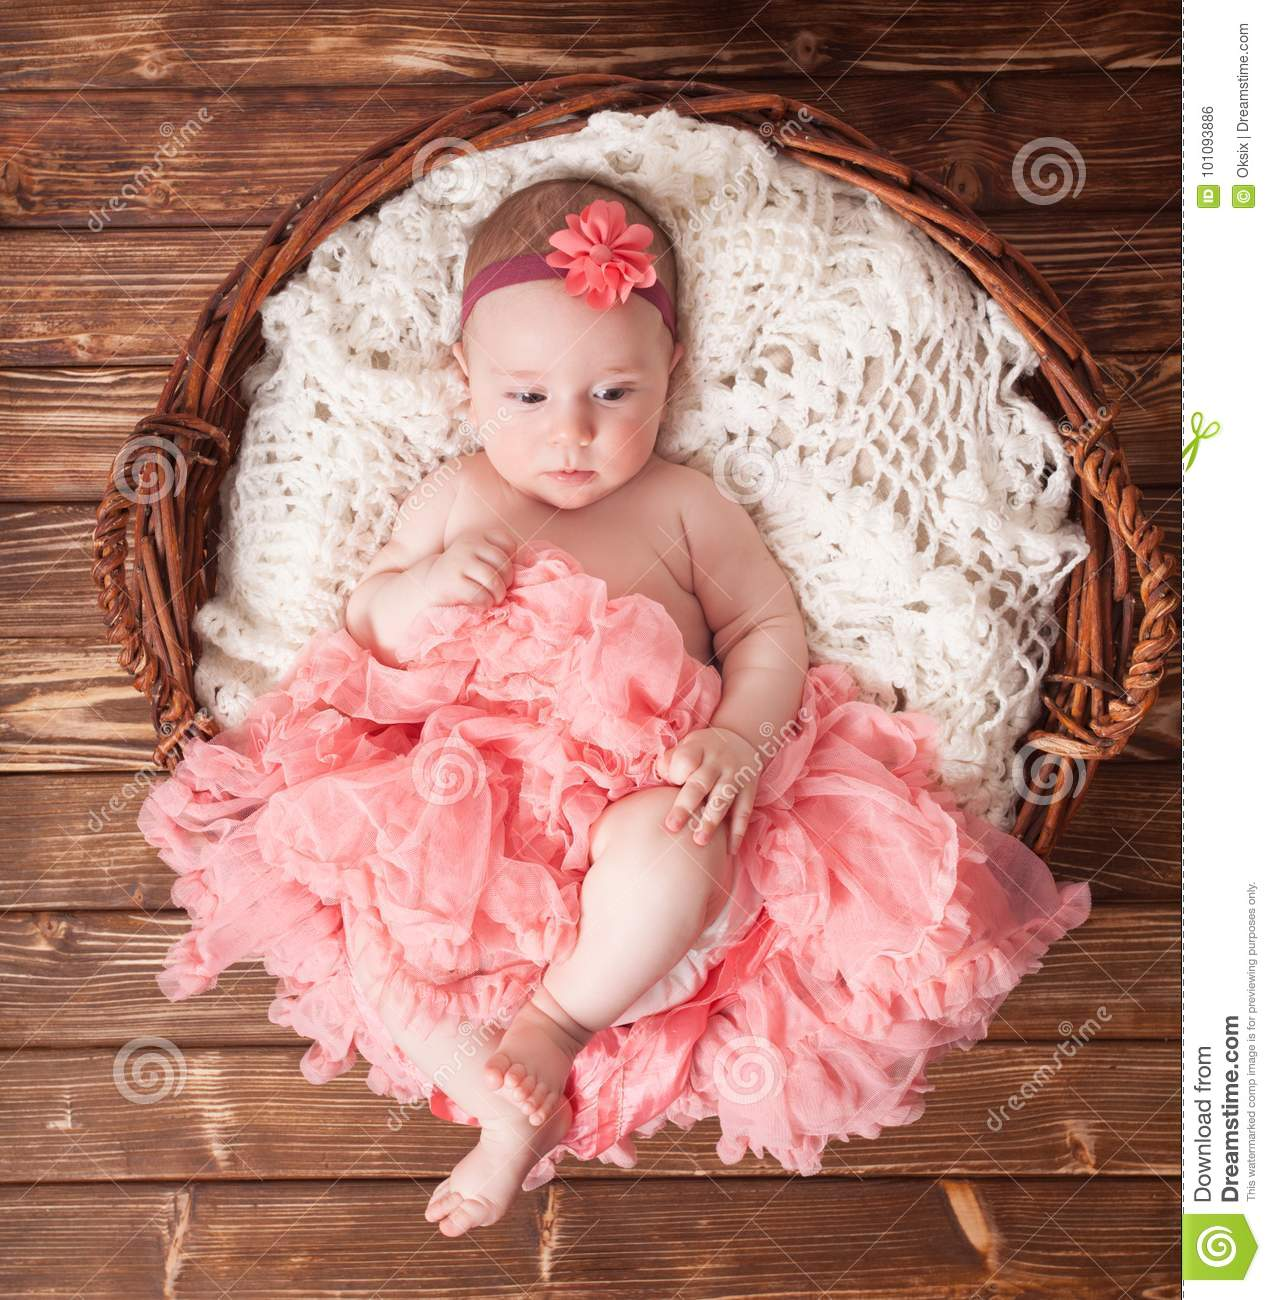 Adorable baby girl in pink tutu lying in the basket newborn photography